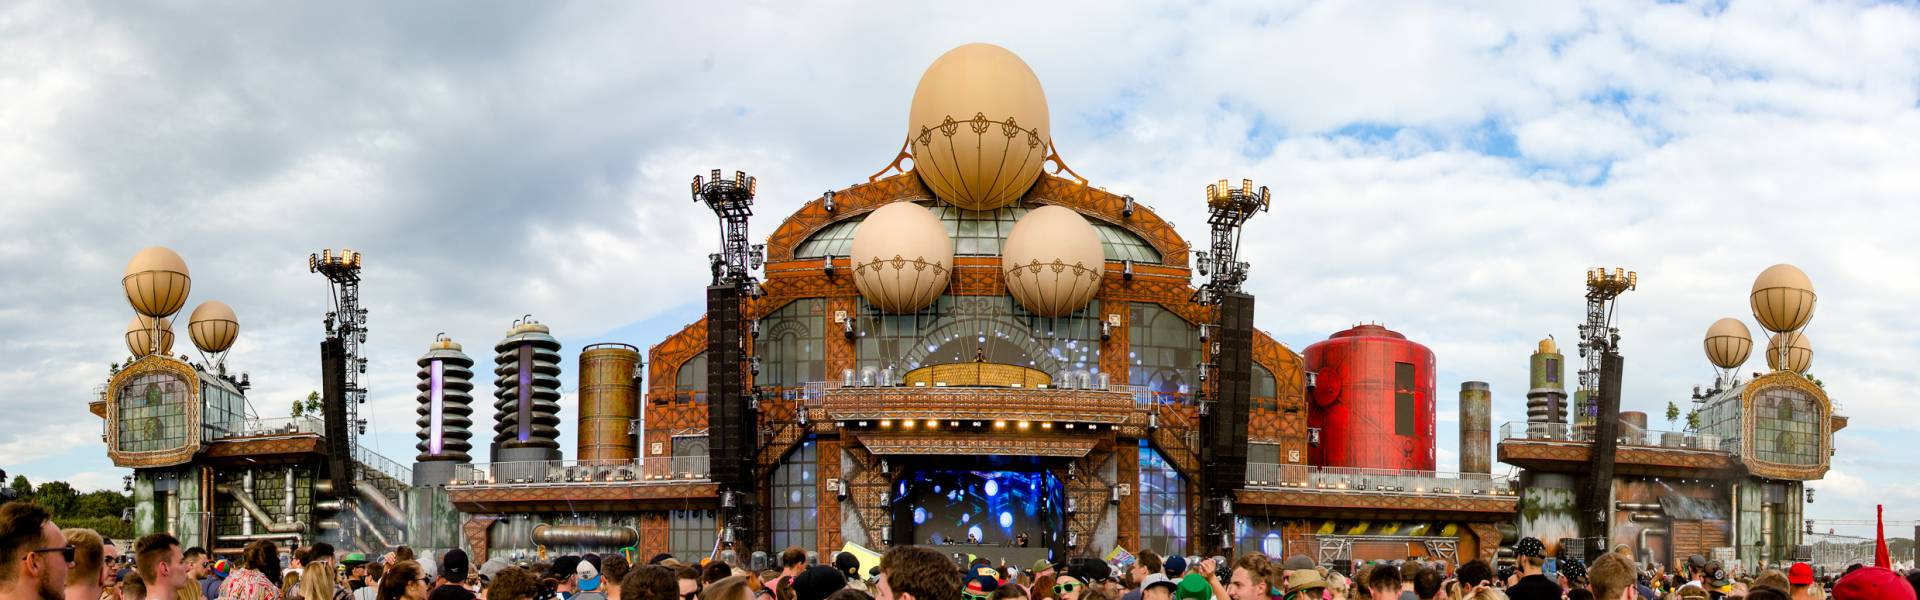 Large inflatable promotional material | X-Treme Creations Stage at the Parookaville festival for which X-Treme provided the balloons Next Events GmbH Phixion Creation X-Treme Creations